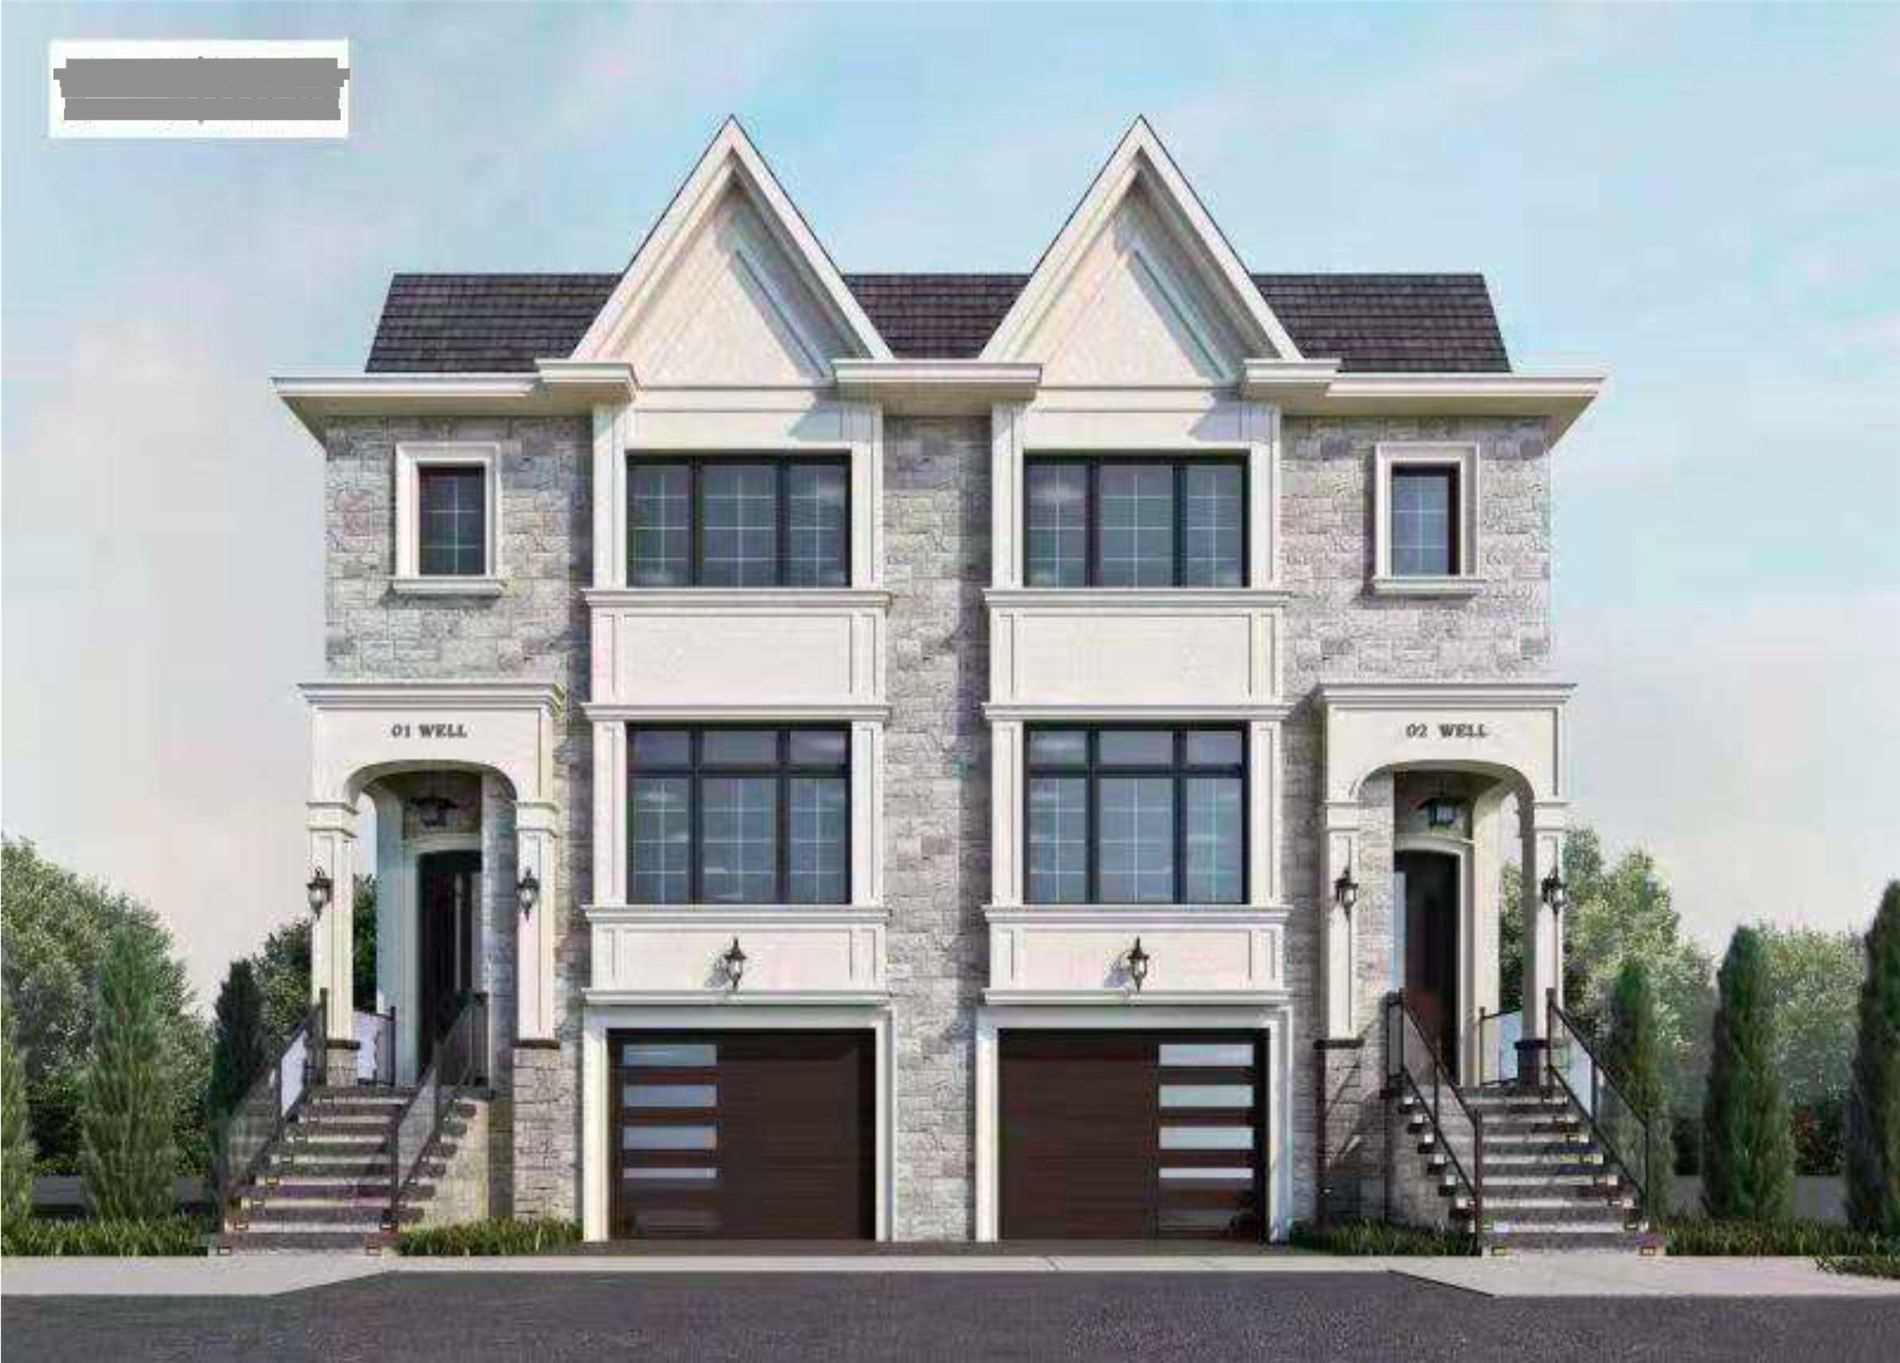 Detached house For Sale In Richmond Hill - 36 Weldrick Rd, Richmond Hill, Ontario, Canada L4C3T8 , 4 Bedrooms Bedrooms, ,4 BathroomsBathrooms,Detached,For Sale,Weldrick